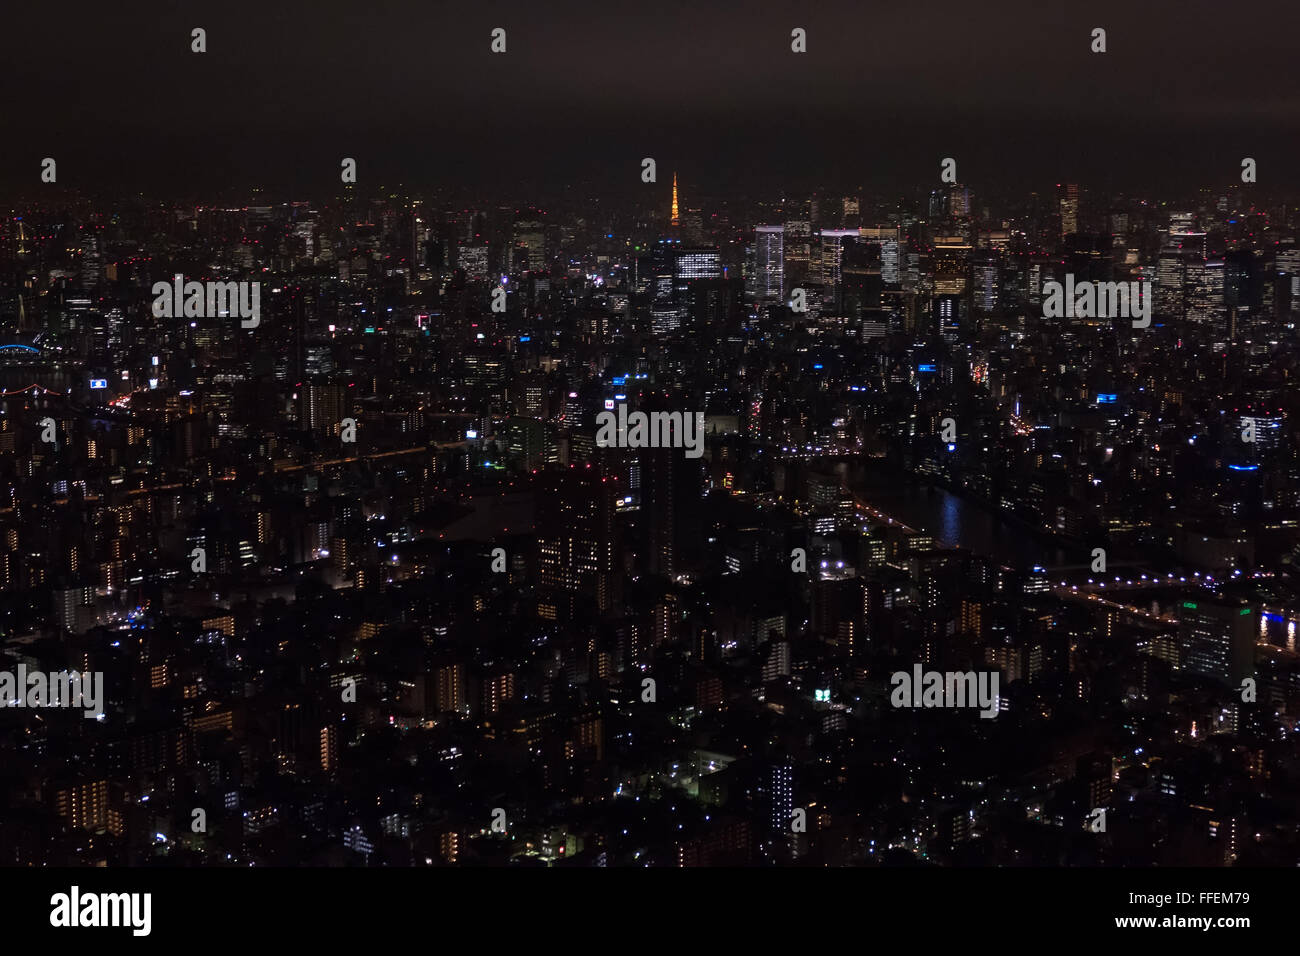 Tokyo, Japon, Asie. Vue panoramique de la ville la nuit à partir de Skytree tower. Paysage urbain d'Asie, Photo Stock